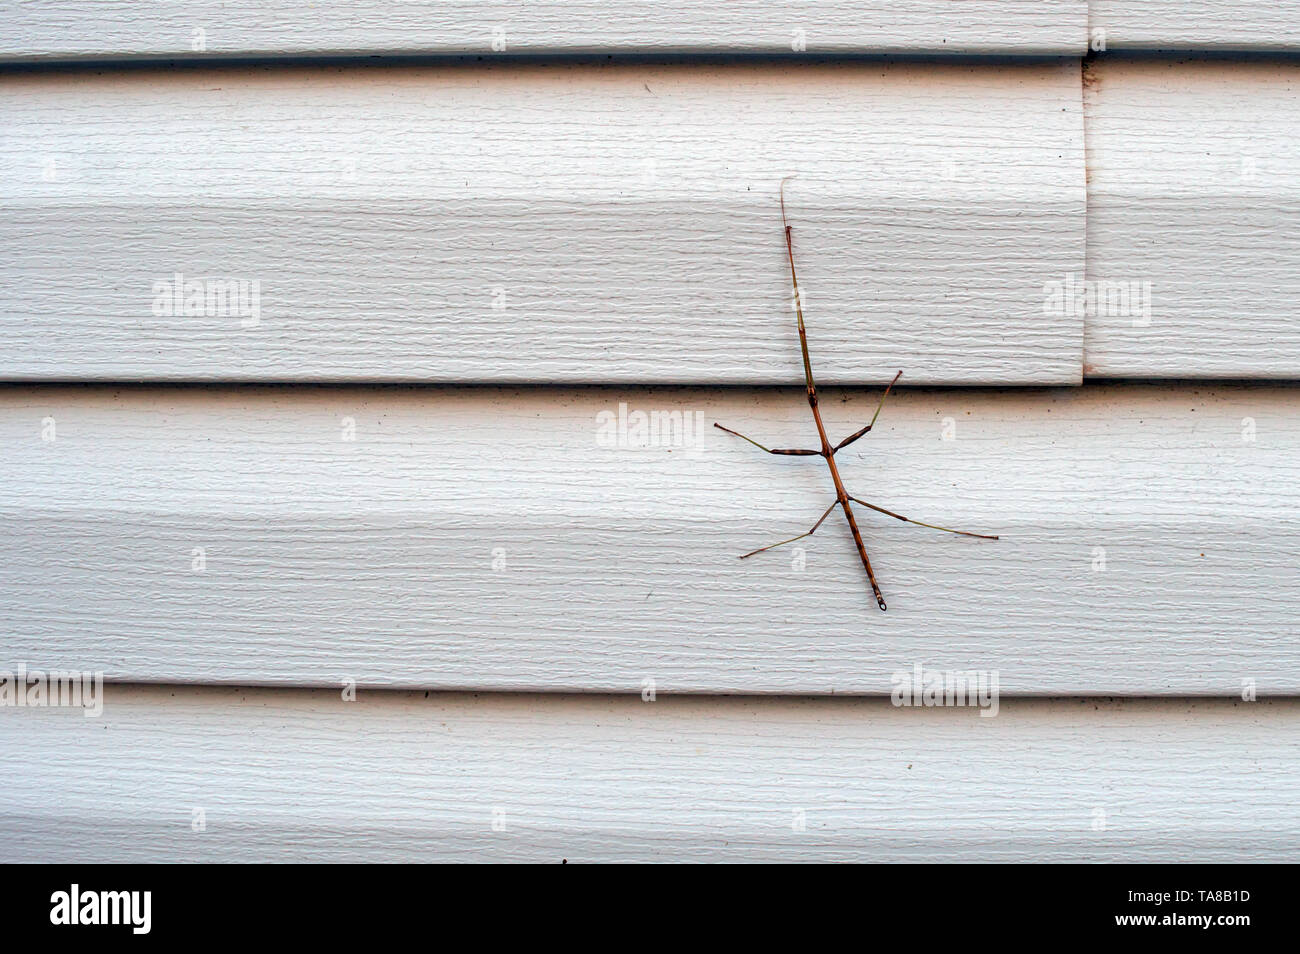 A creepy looking insect, resembing a small woody branch, identified as a walkingstick clings to the siding on a house in southwest Missouri. - Stock Image